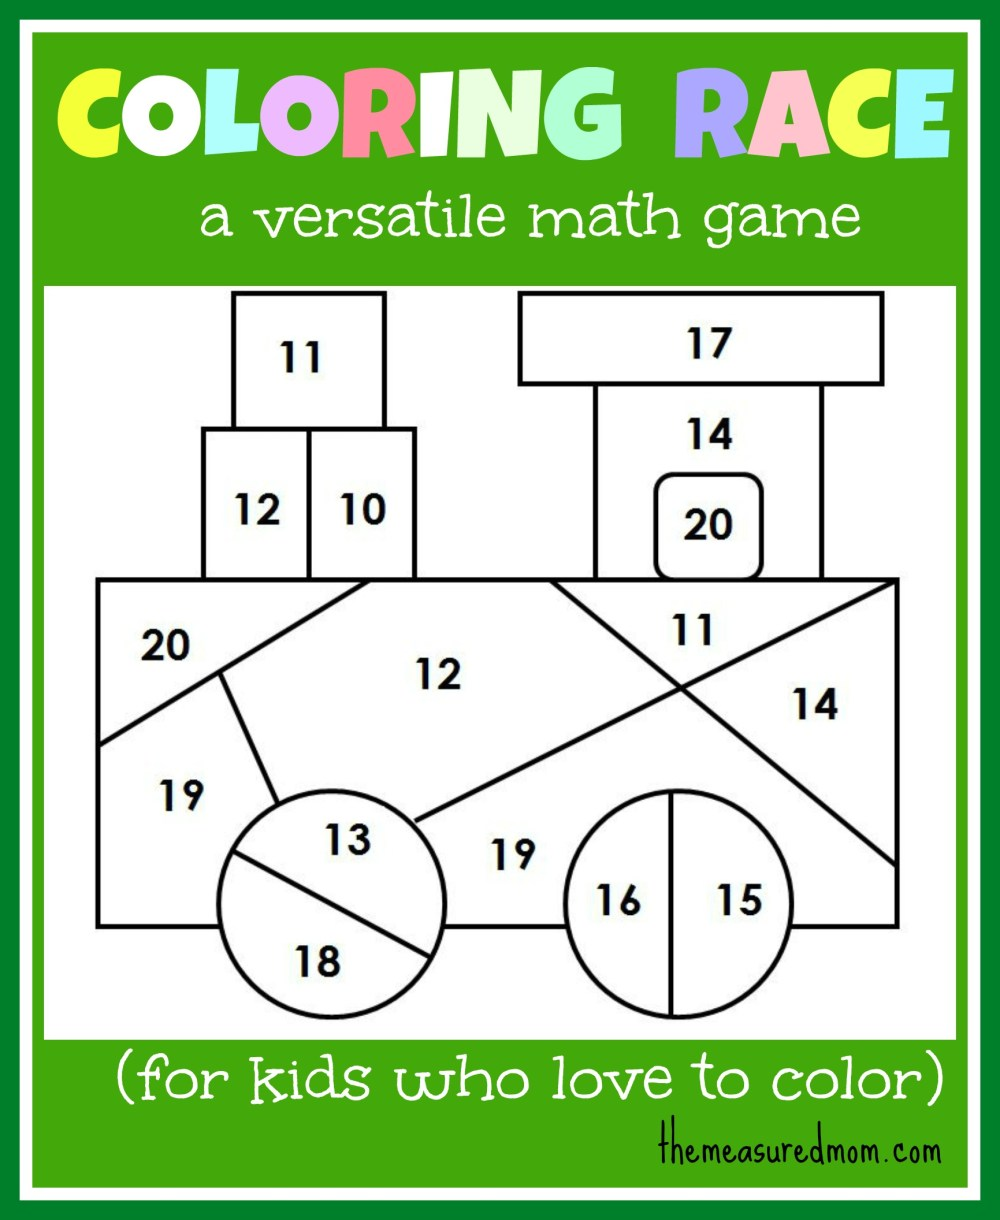 medium resolution of Math game for kids: Coloring Race combines math and coloring - The Measured  Mom